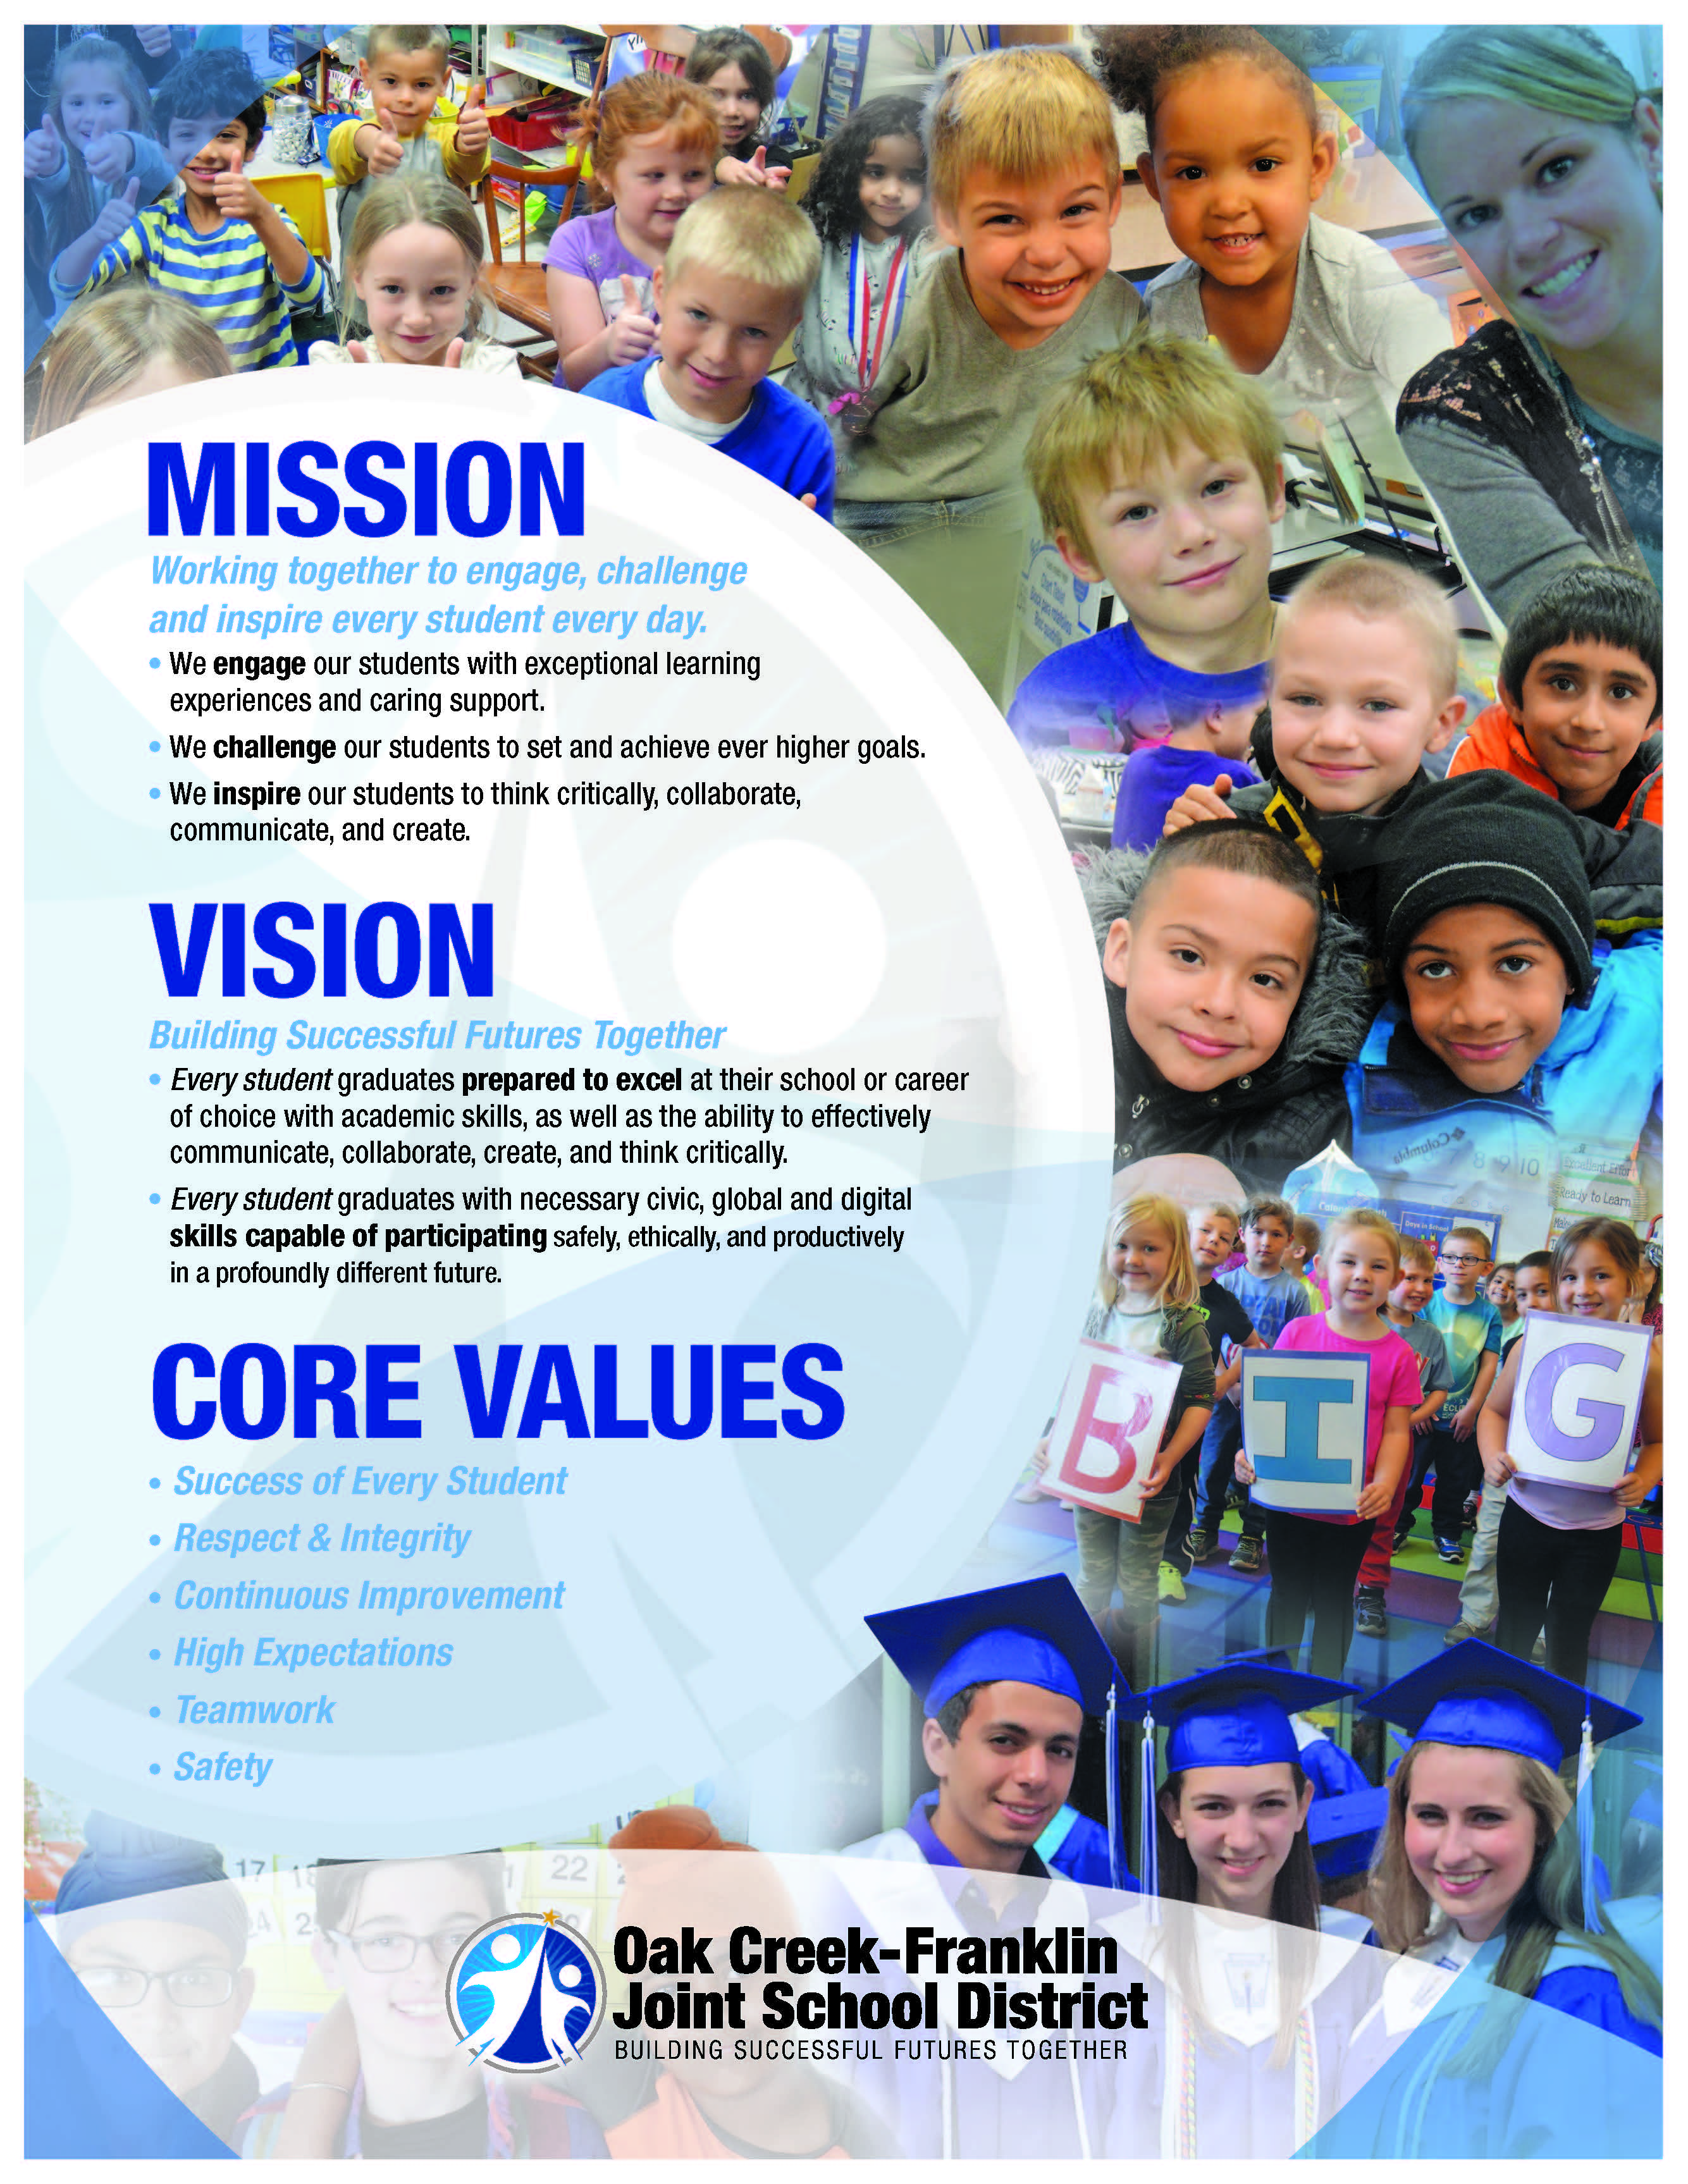 Oak Creek-Franklin School District Mission and Vision